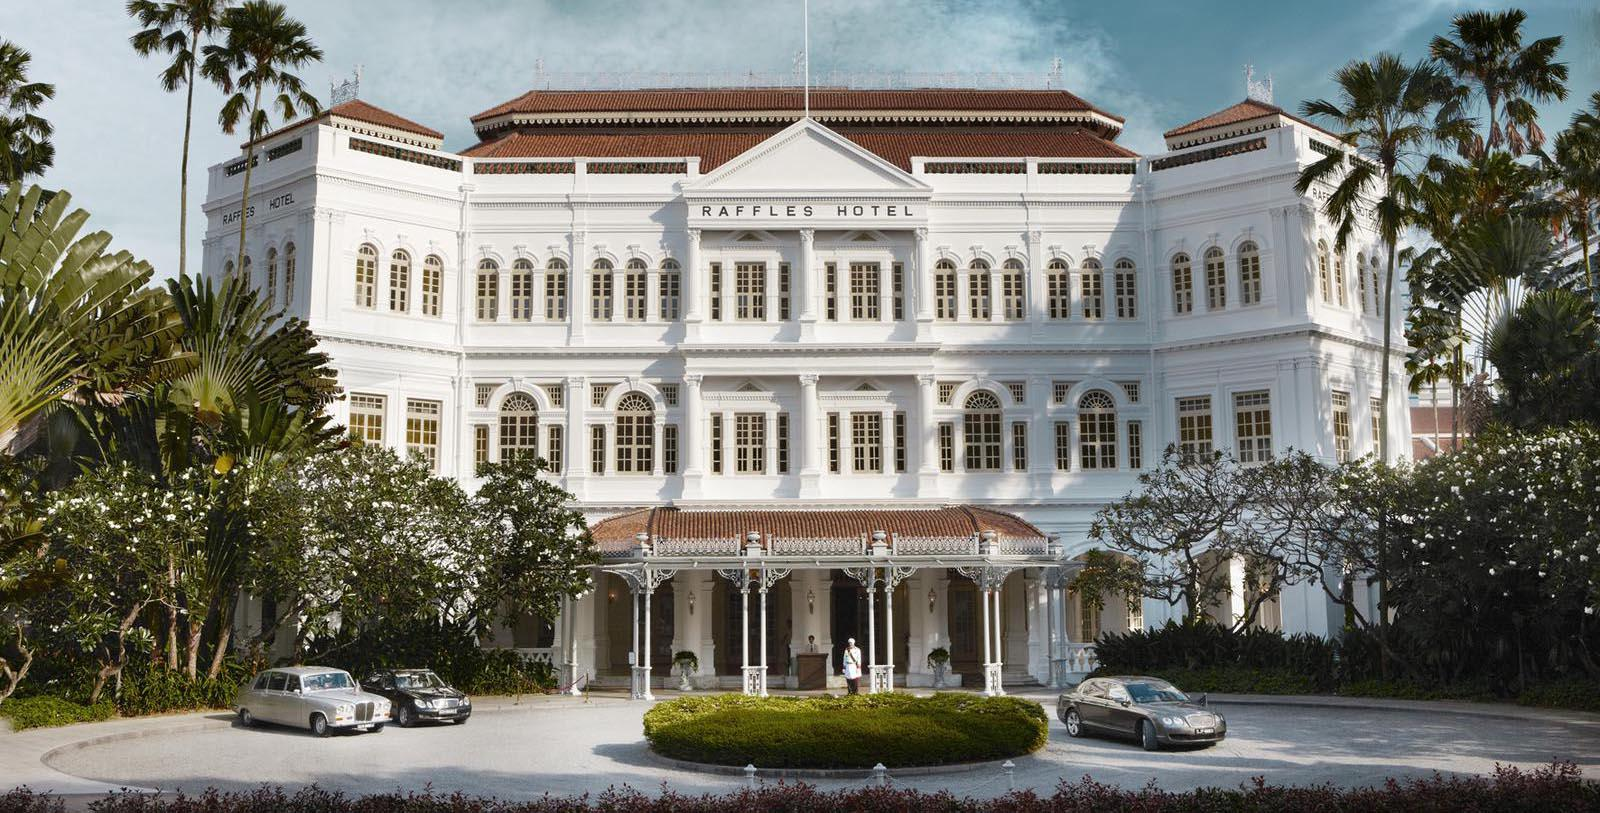 Image of Hotel Exterior Raffles Singapore, 1887, Member of Historic Hotels Worldwide, in Singapore, Special Offers, Discounted Rates, Families, Romantic Escape, Honeymoons, Anniversaries, Reunions